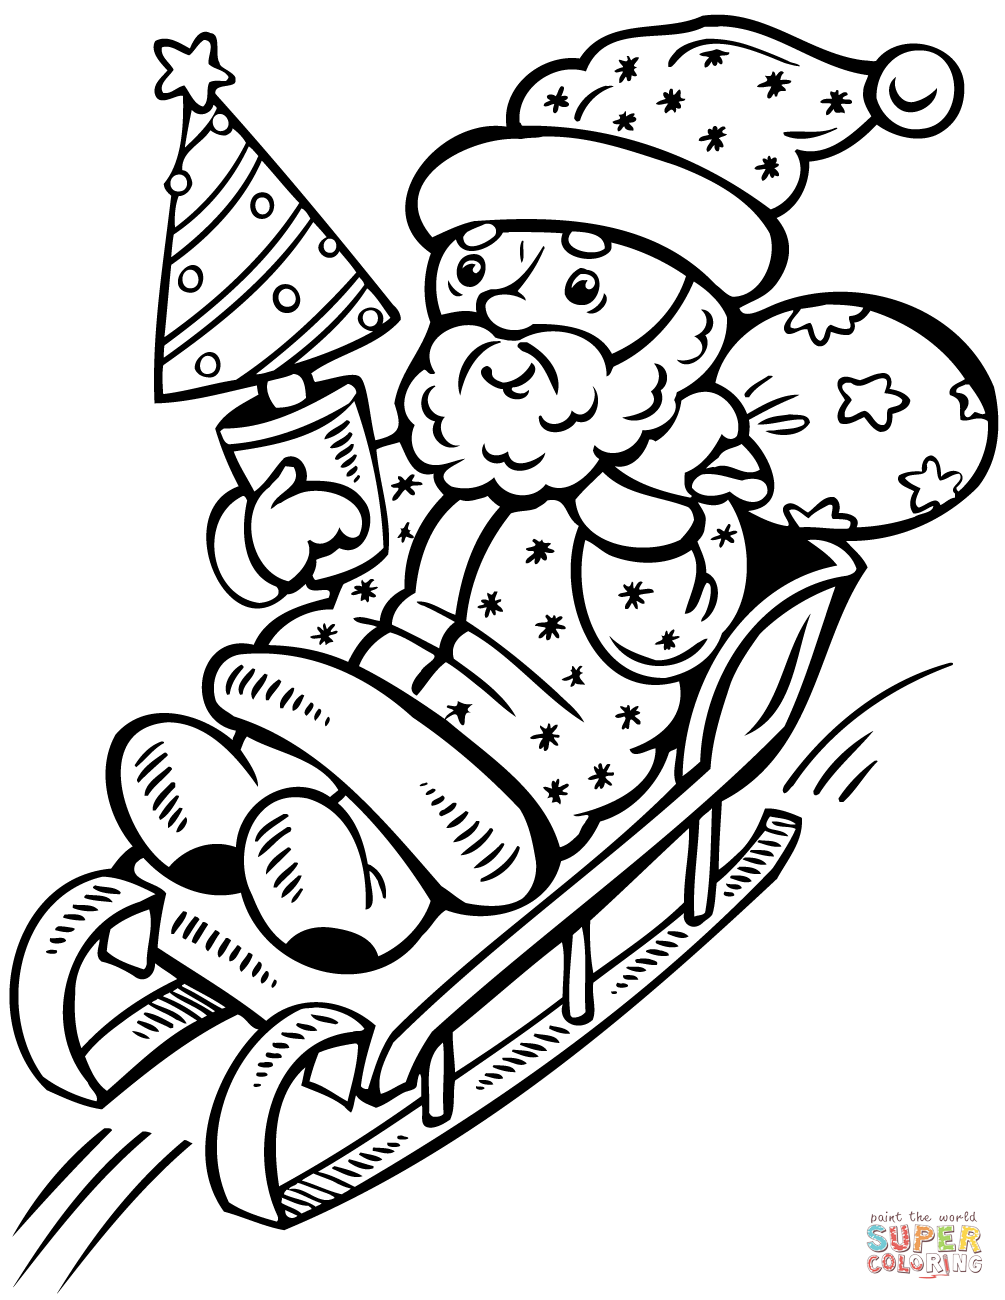 Santa Claus Coloring Games Free Online With On Sleigh Christmas Tree Page